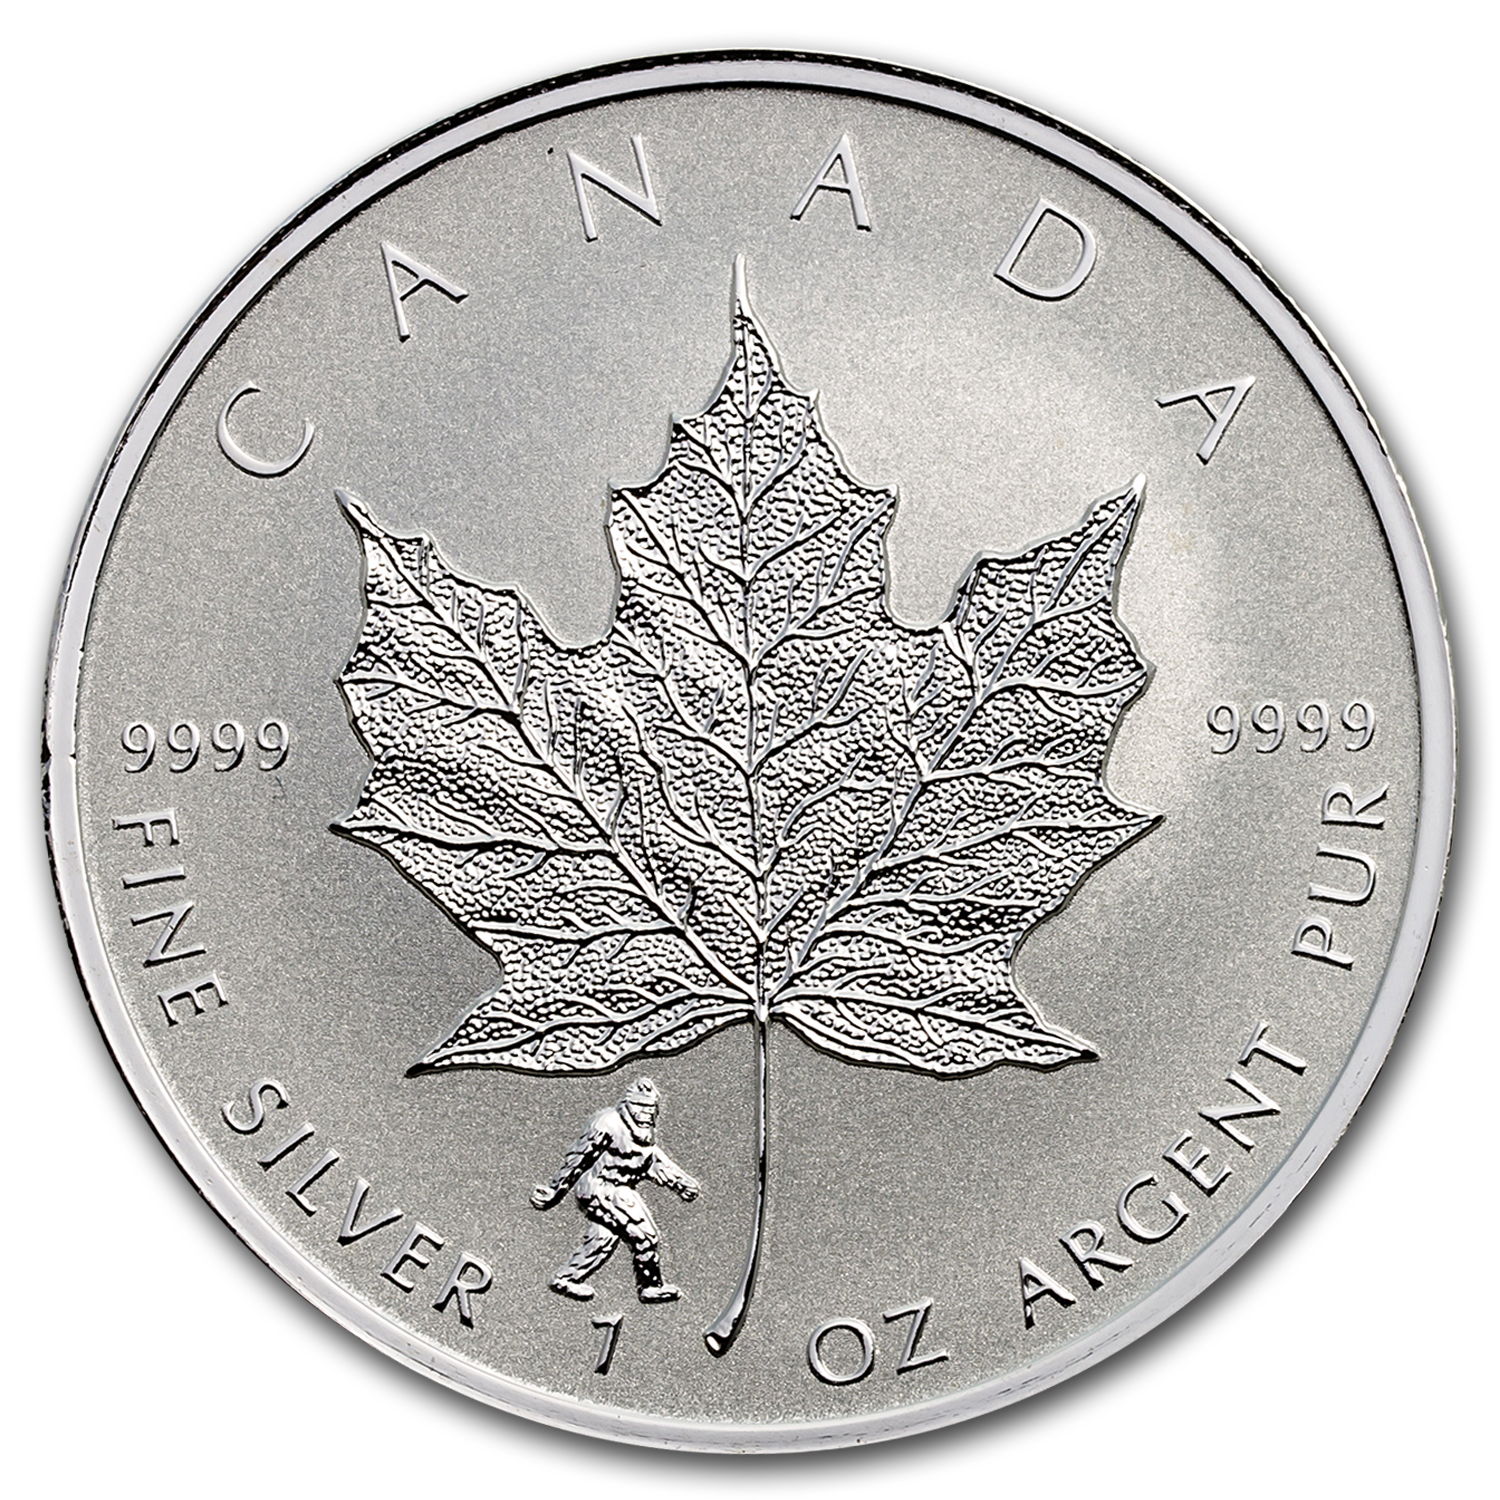 2016 Canada 1 oz Silver Maple Leaf Bigfoot Privy